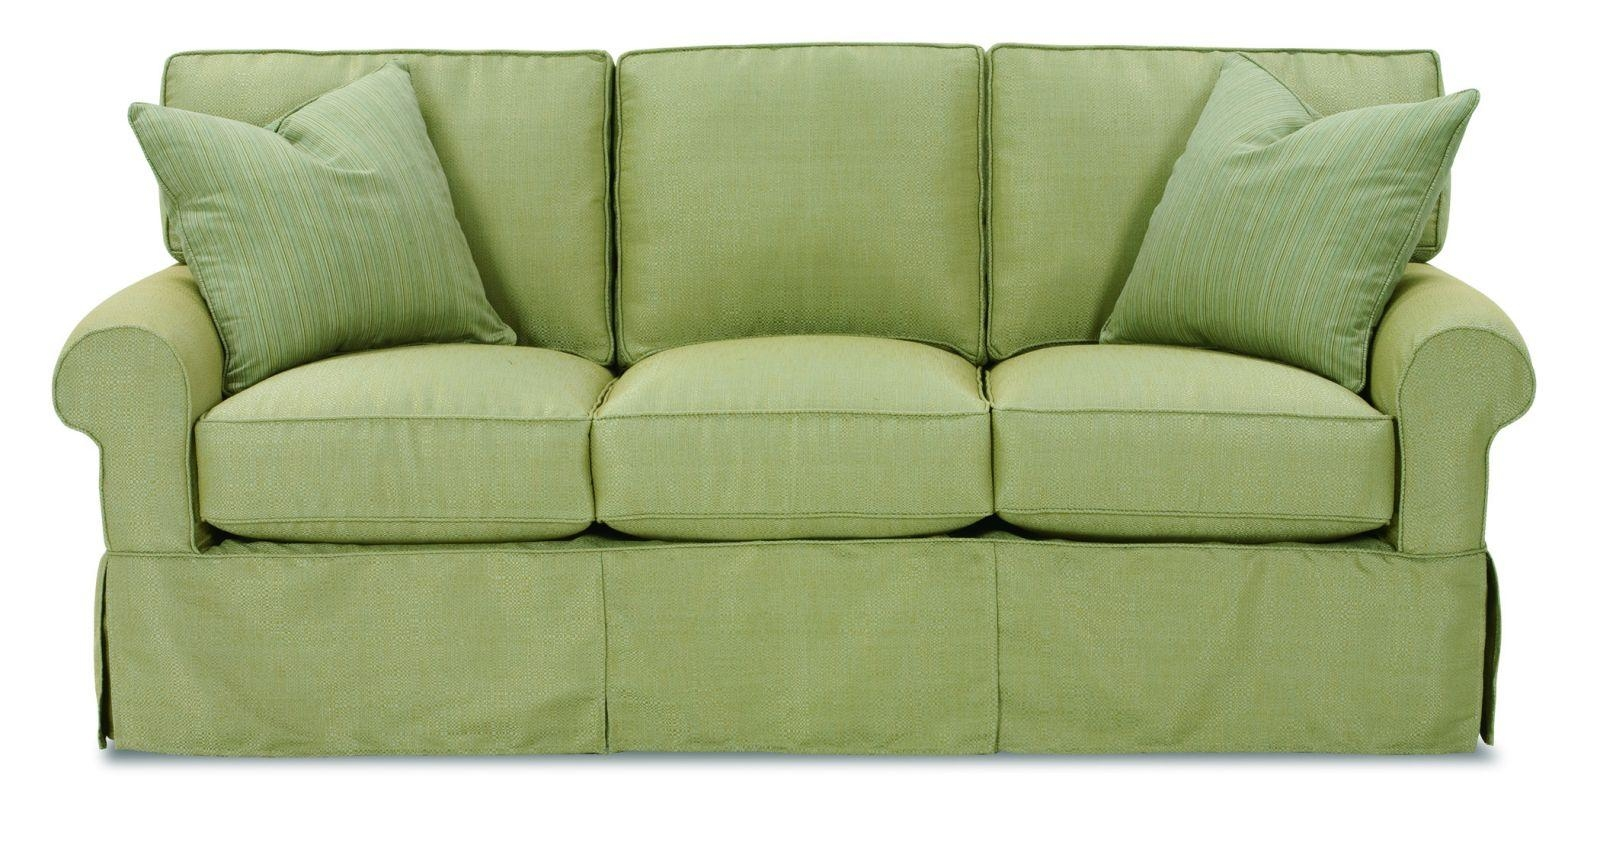 Inspiration Idea Green Sofa Slipcover With Sage Green Loden With Green Sofa Chairs (View 16 of 20)